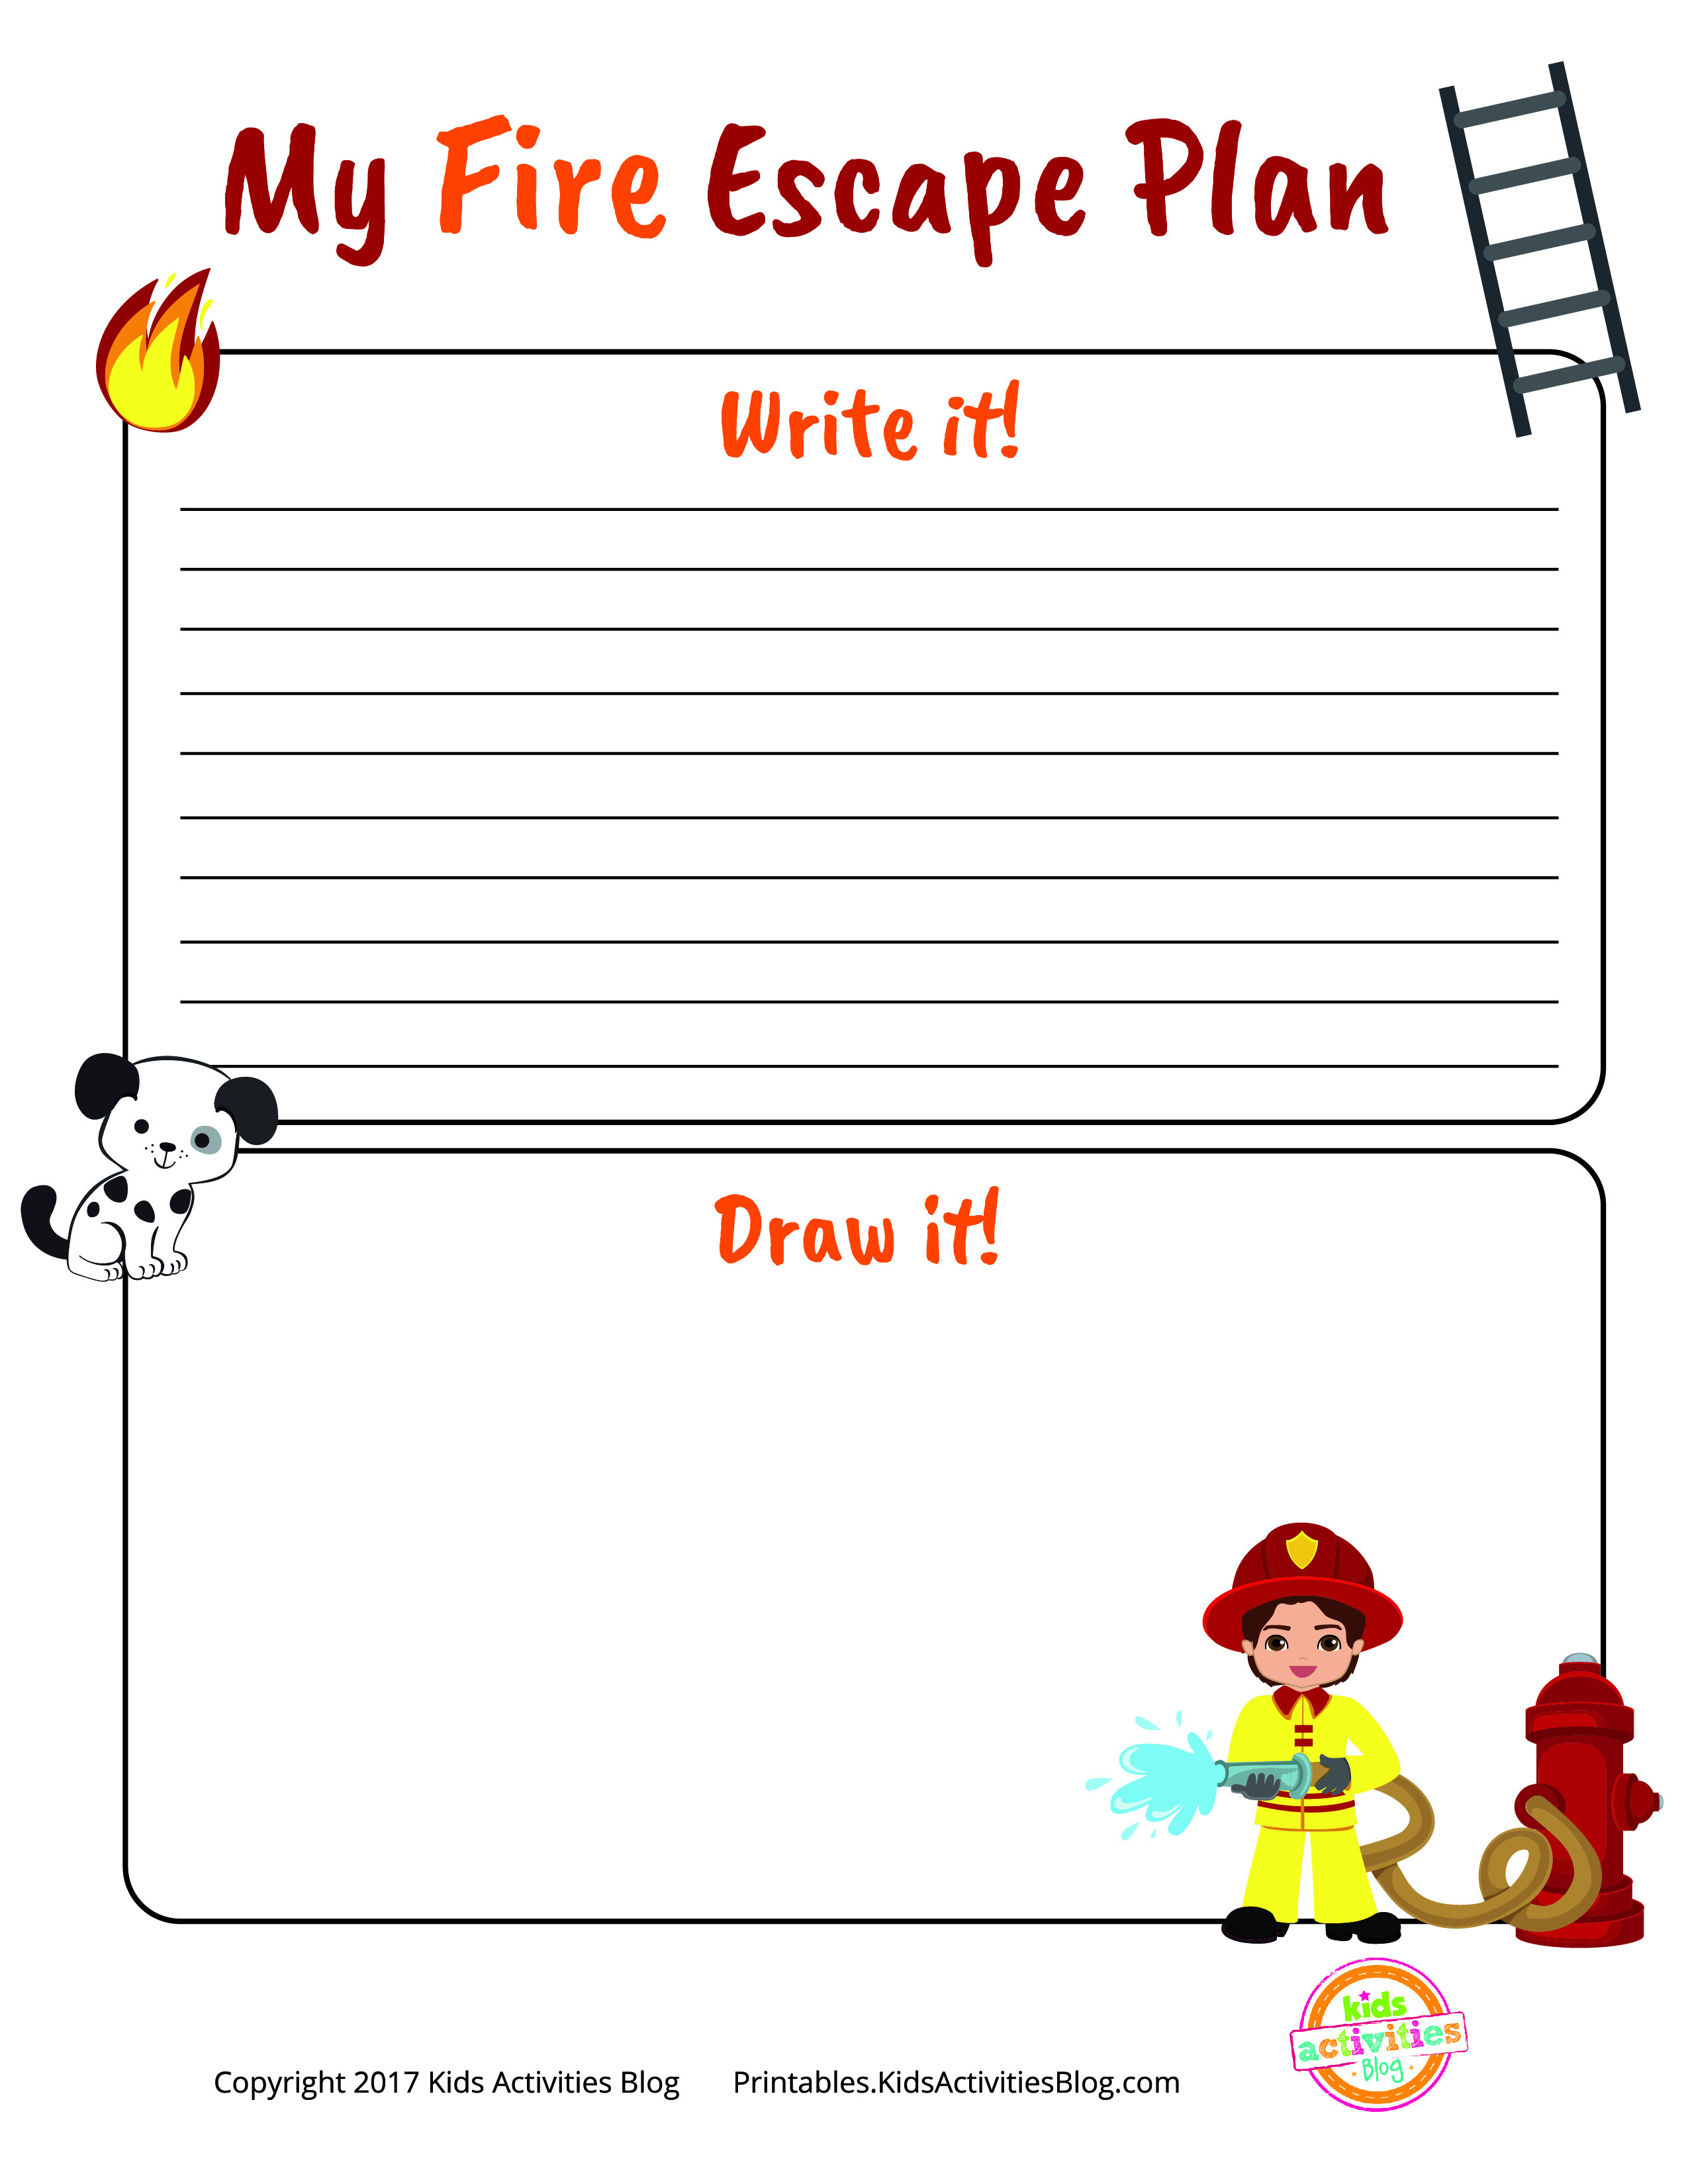 Fire Escape Plan Printable For National Fire Prevention Week